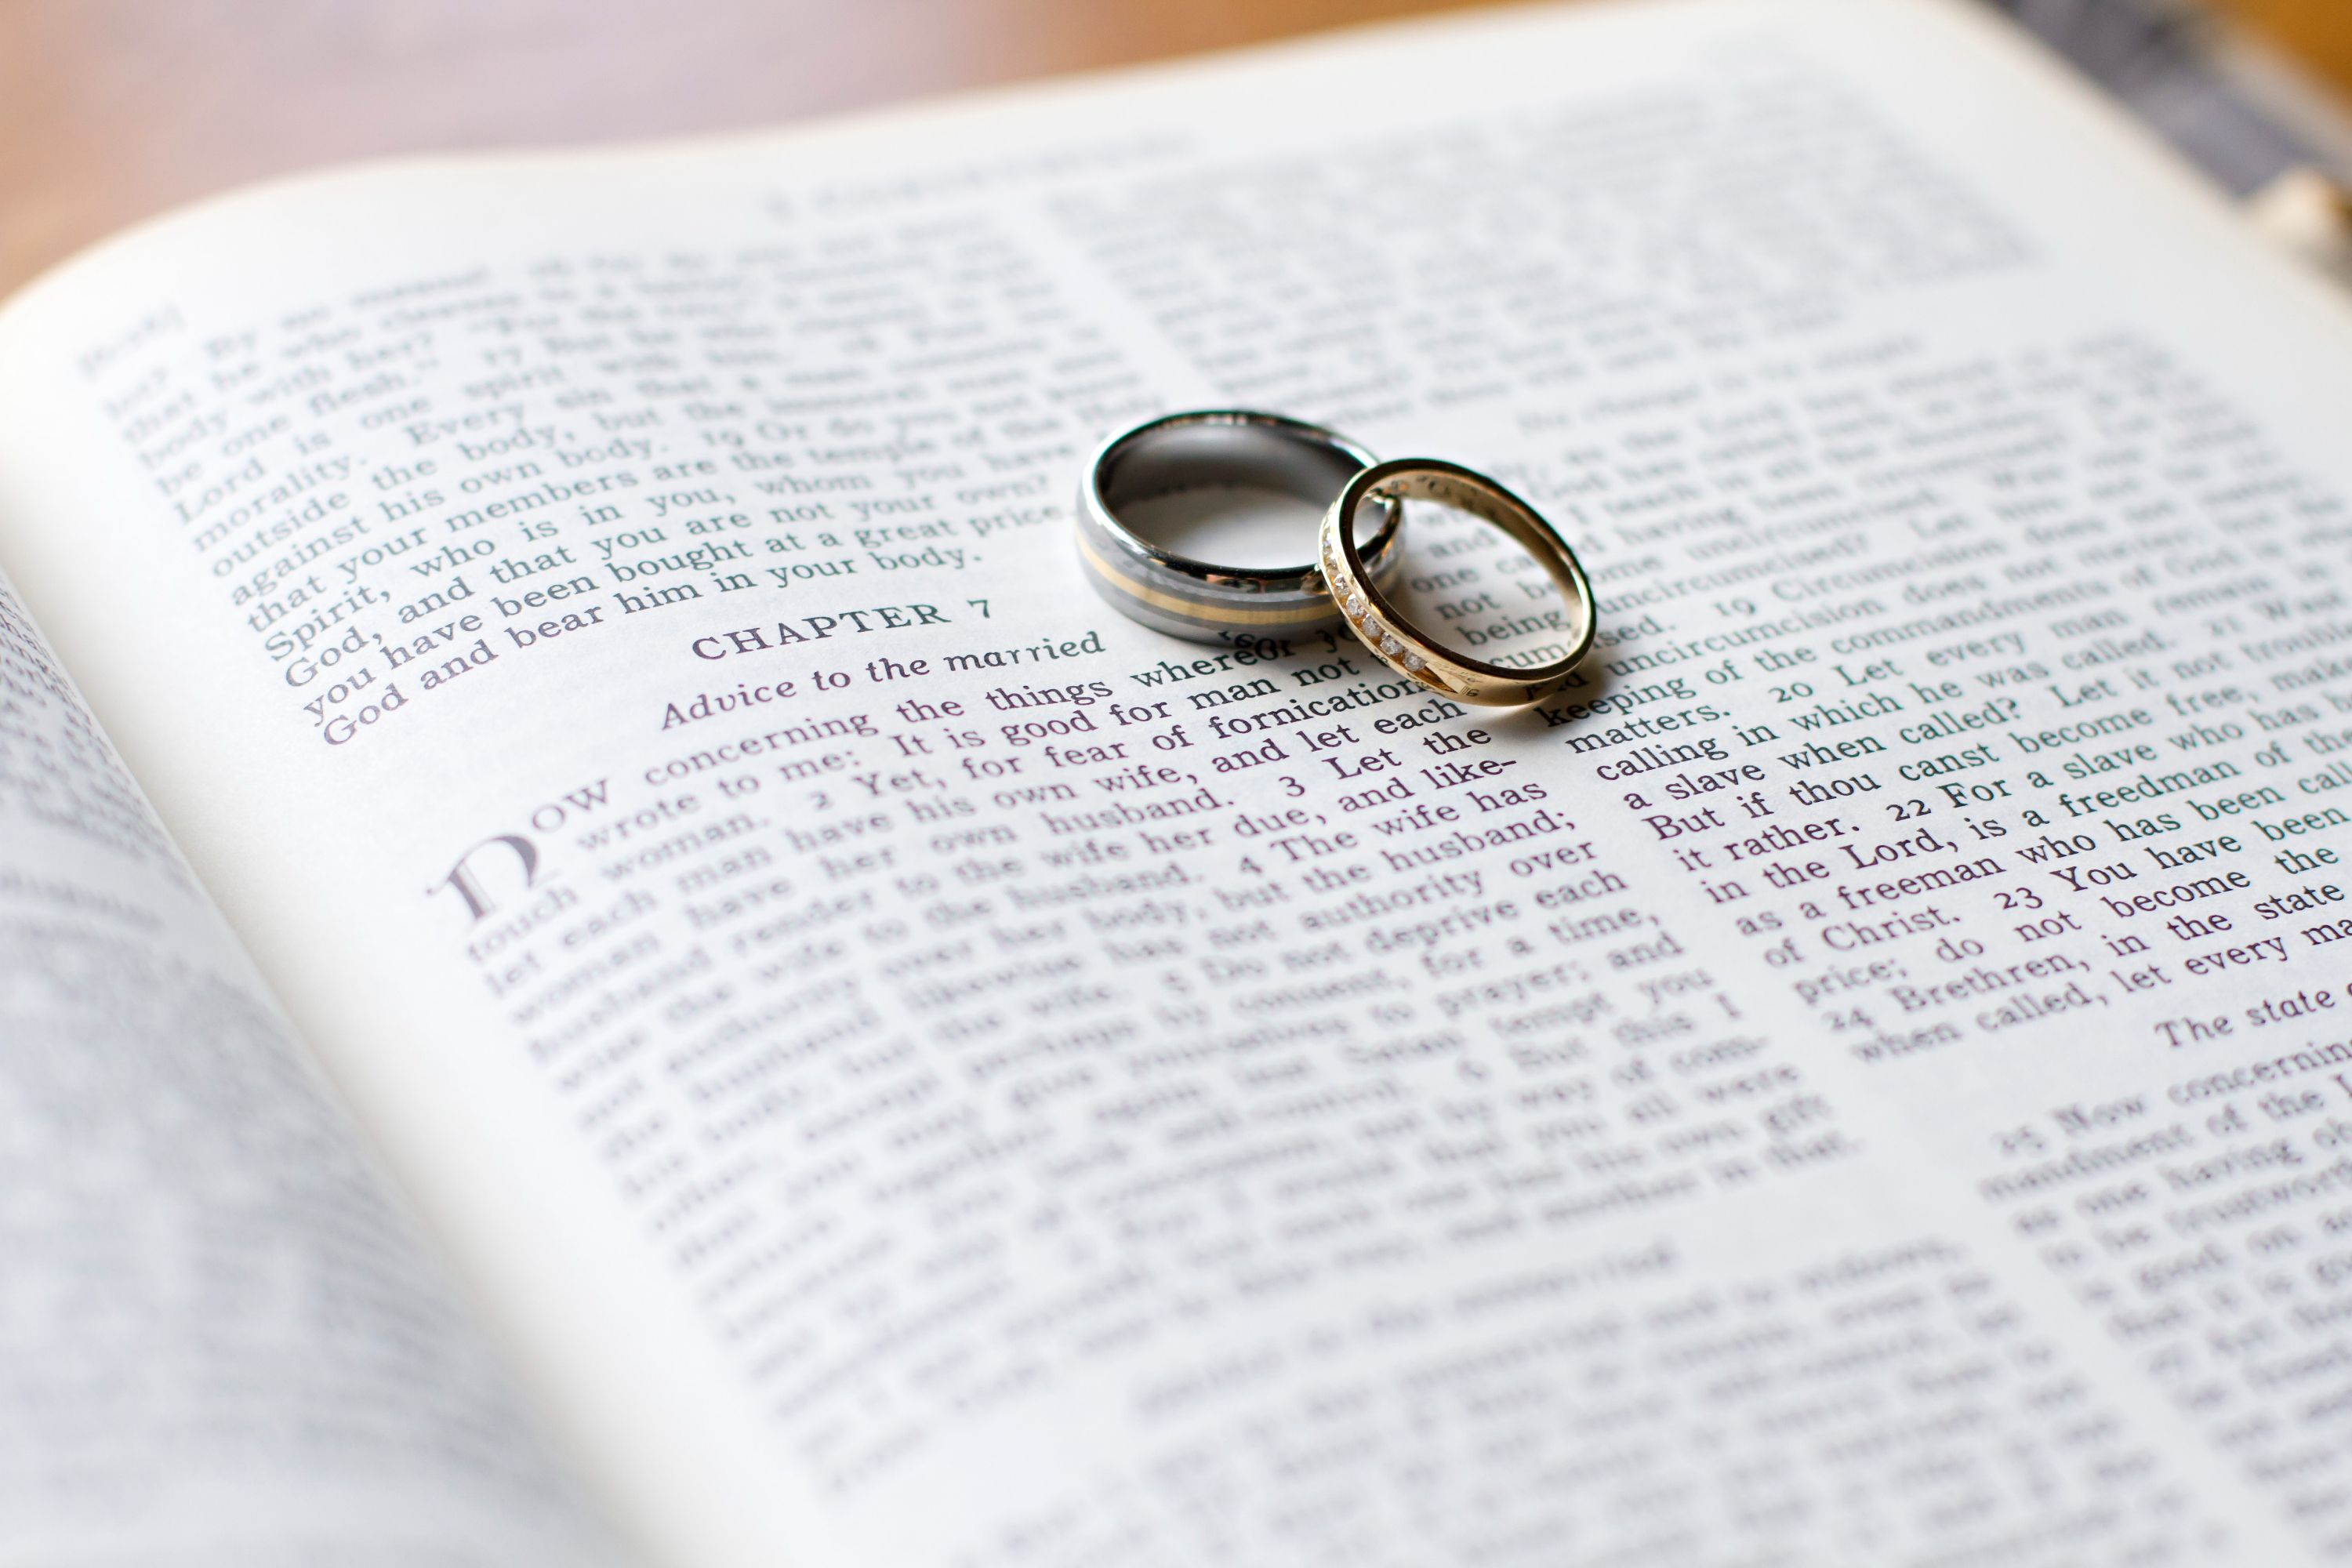 Wedding bands with a marriage verse from the bible